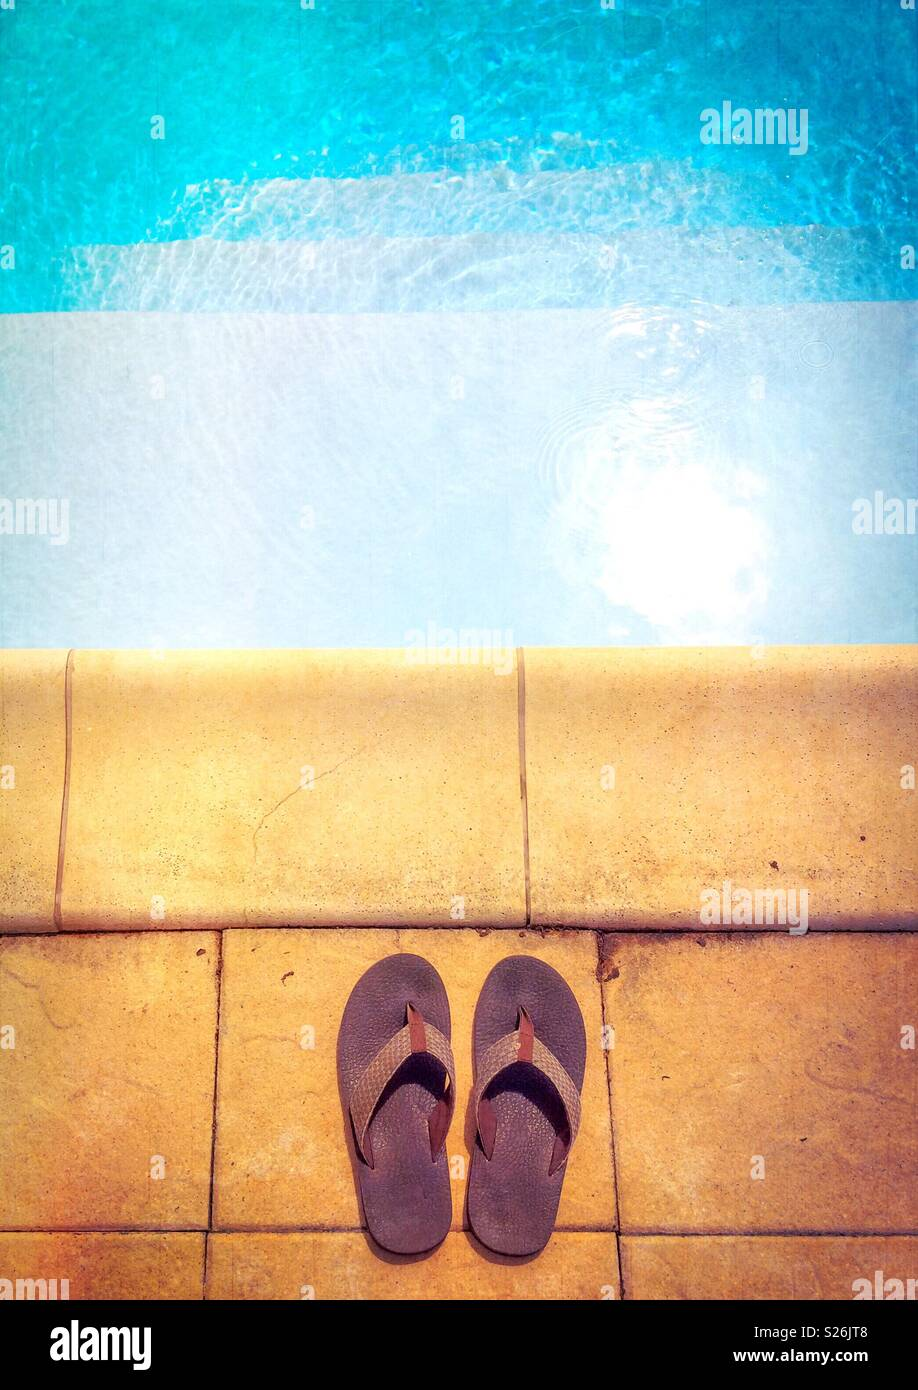 Entering swimming pool. Flat lay picture of a pair of flip-flops on the edge of a swimming pool. Summer concept. - Stock Image